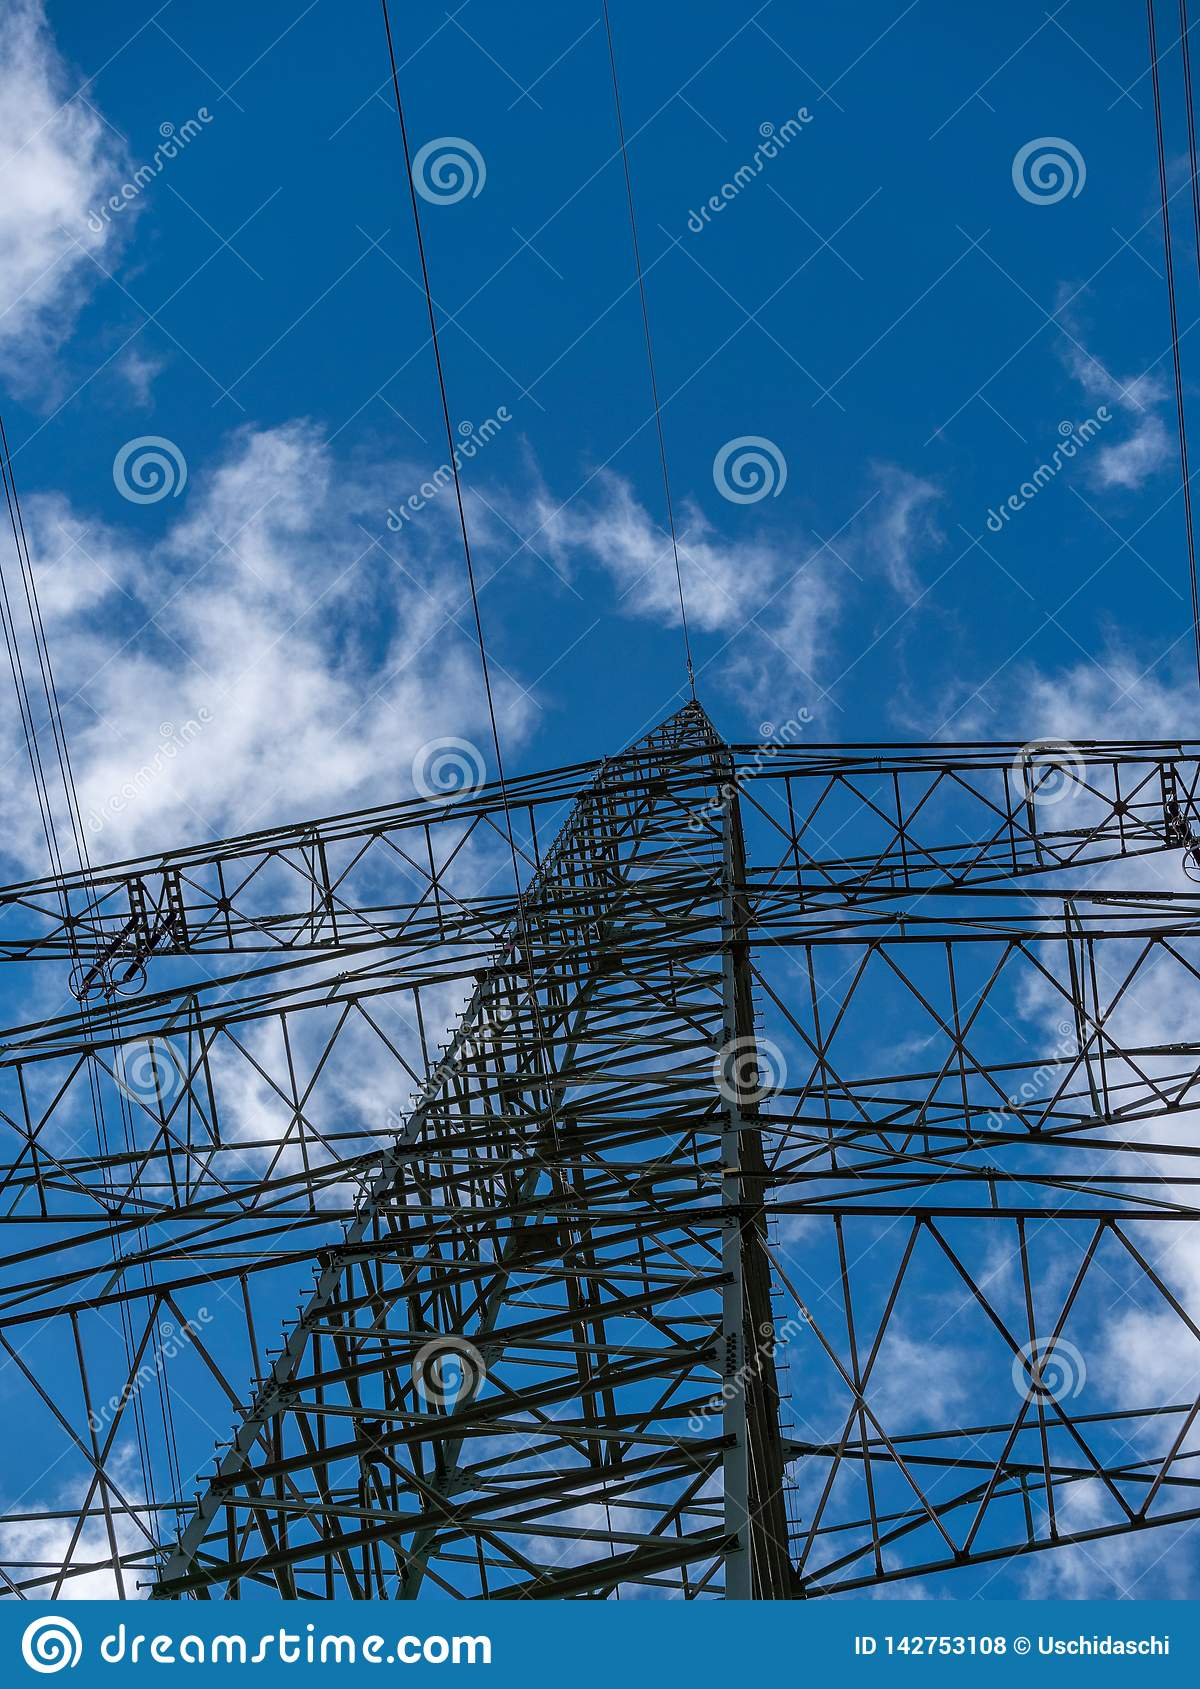 Image of power pole with cloudy background